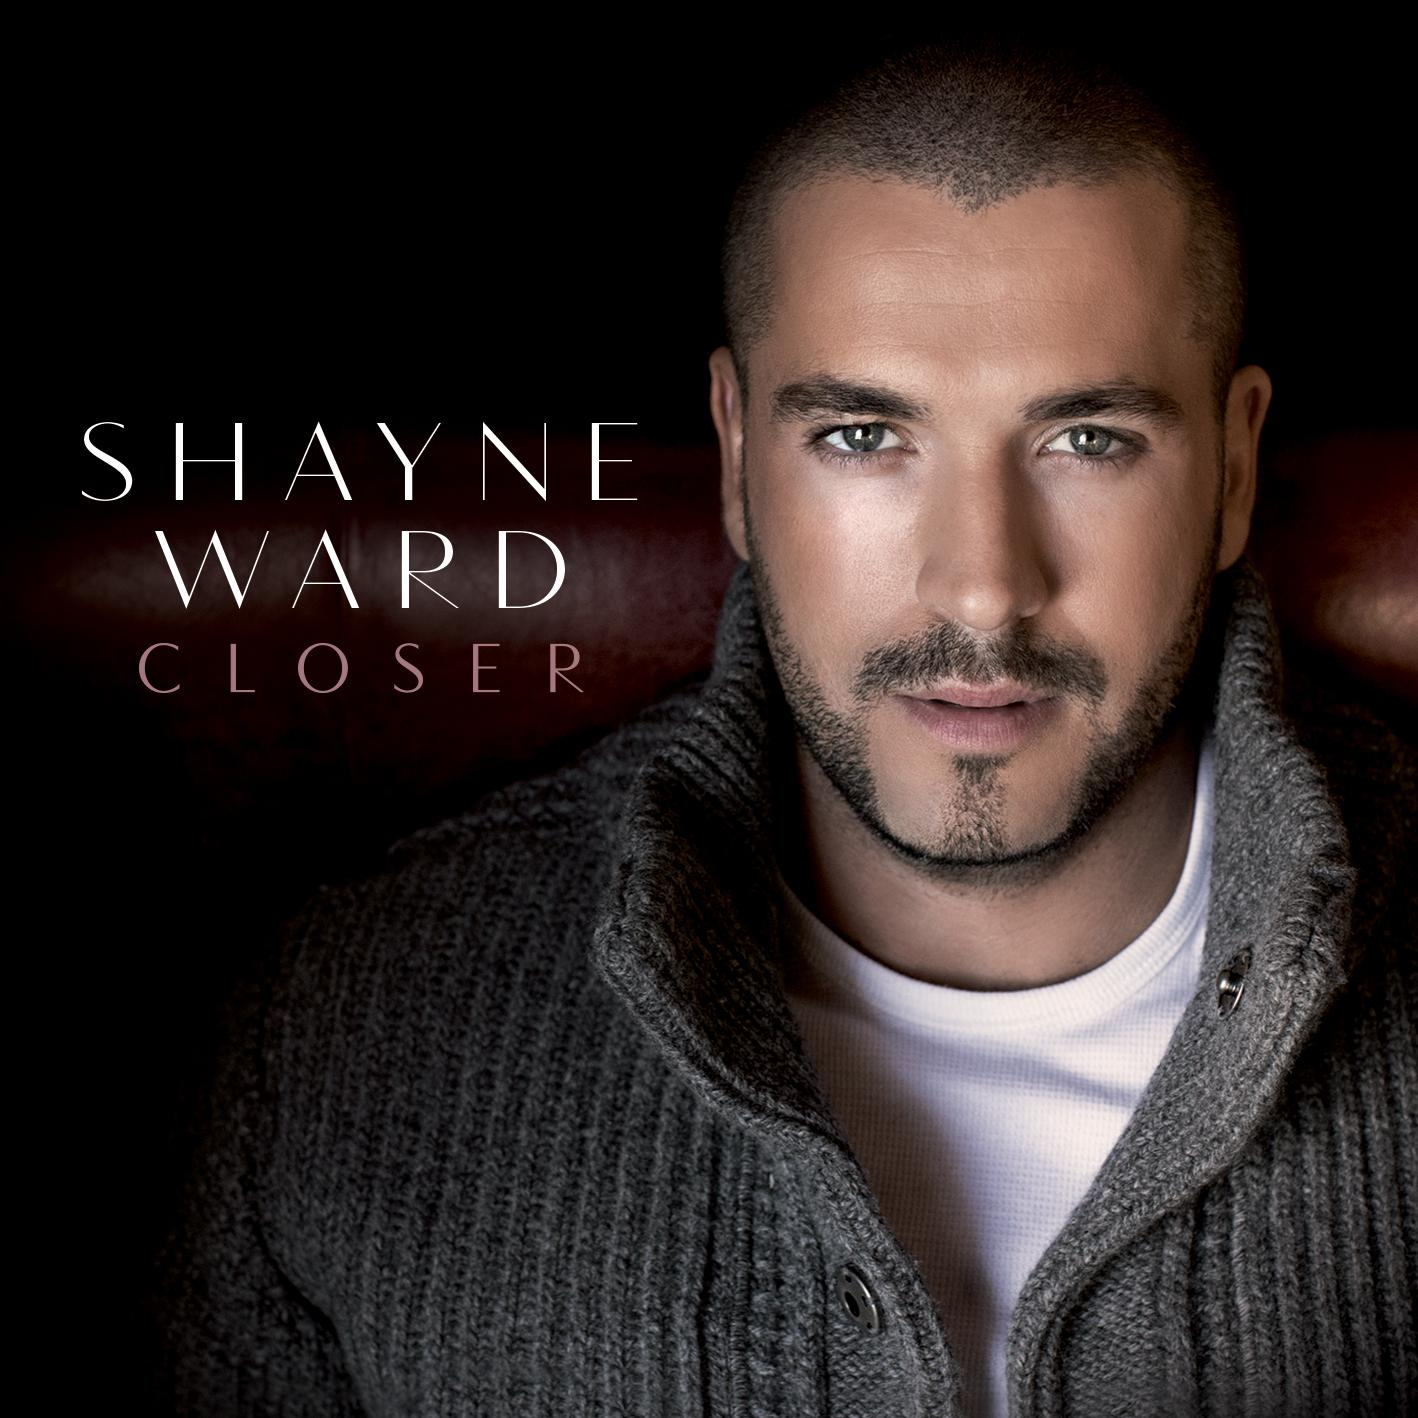 RT @HMVIreland: .@shayneTward is signing @HMVDundrum today @ 1pm! Wristbands available in-store. Details here: http://t.co/xc1HG14BTC http:…